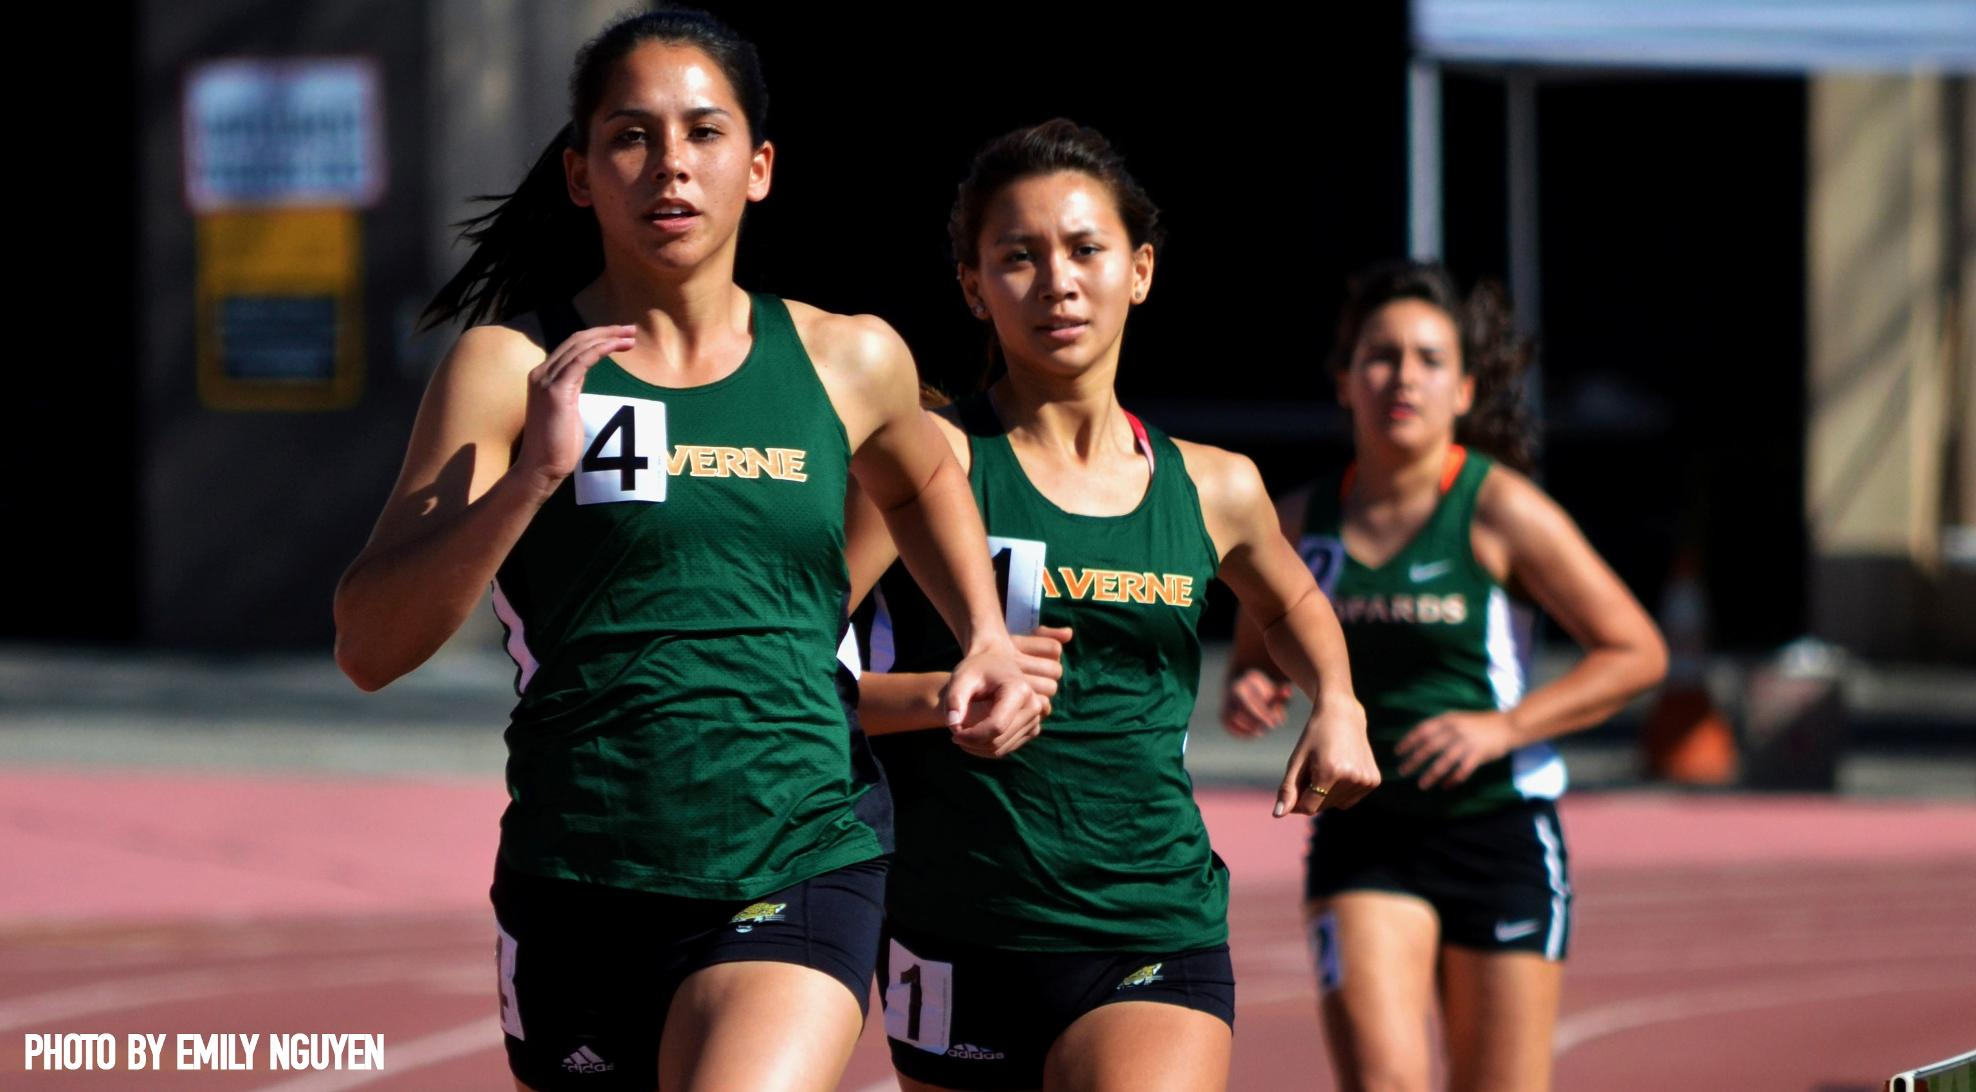 Track and Field kicks off season at Caltech All-Comers